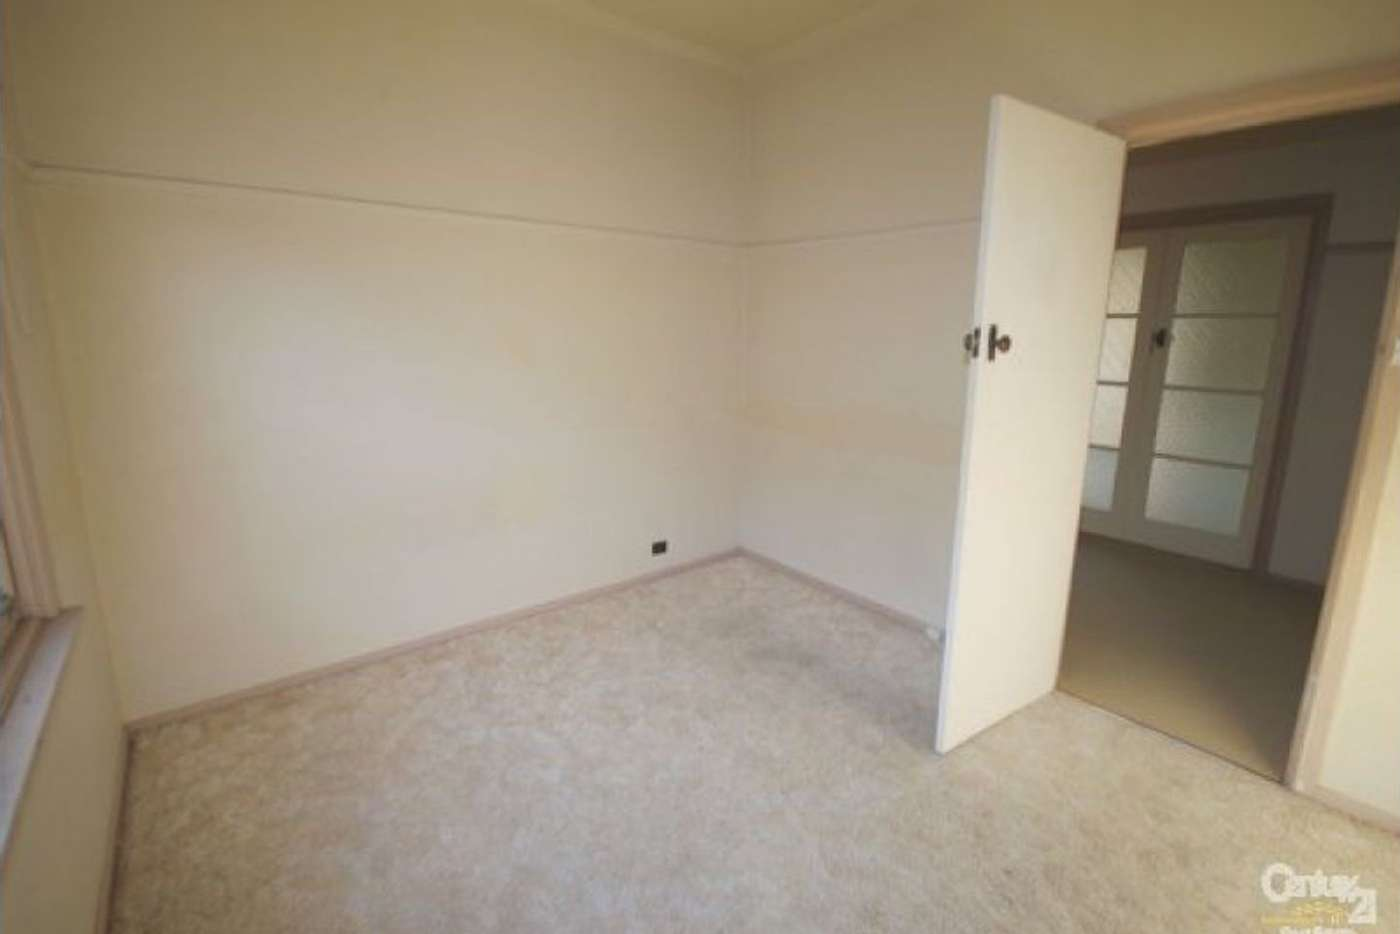 Sixth view of Homely house listing, 87 Tucker Road, Bentleigh VIC 3204